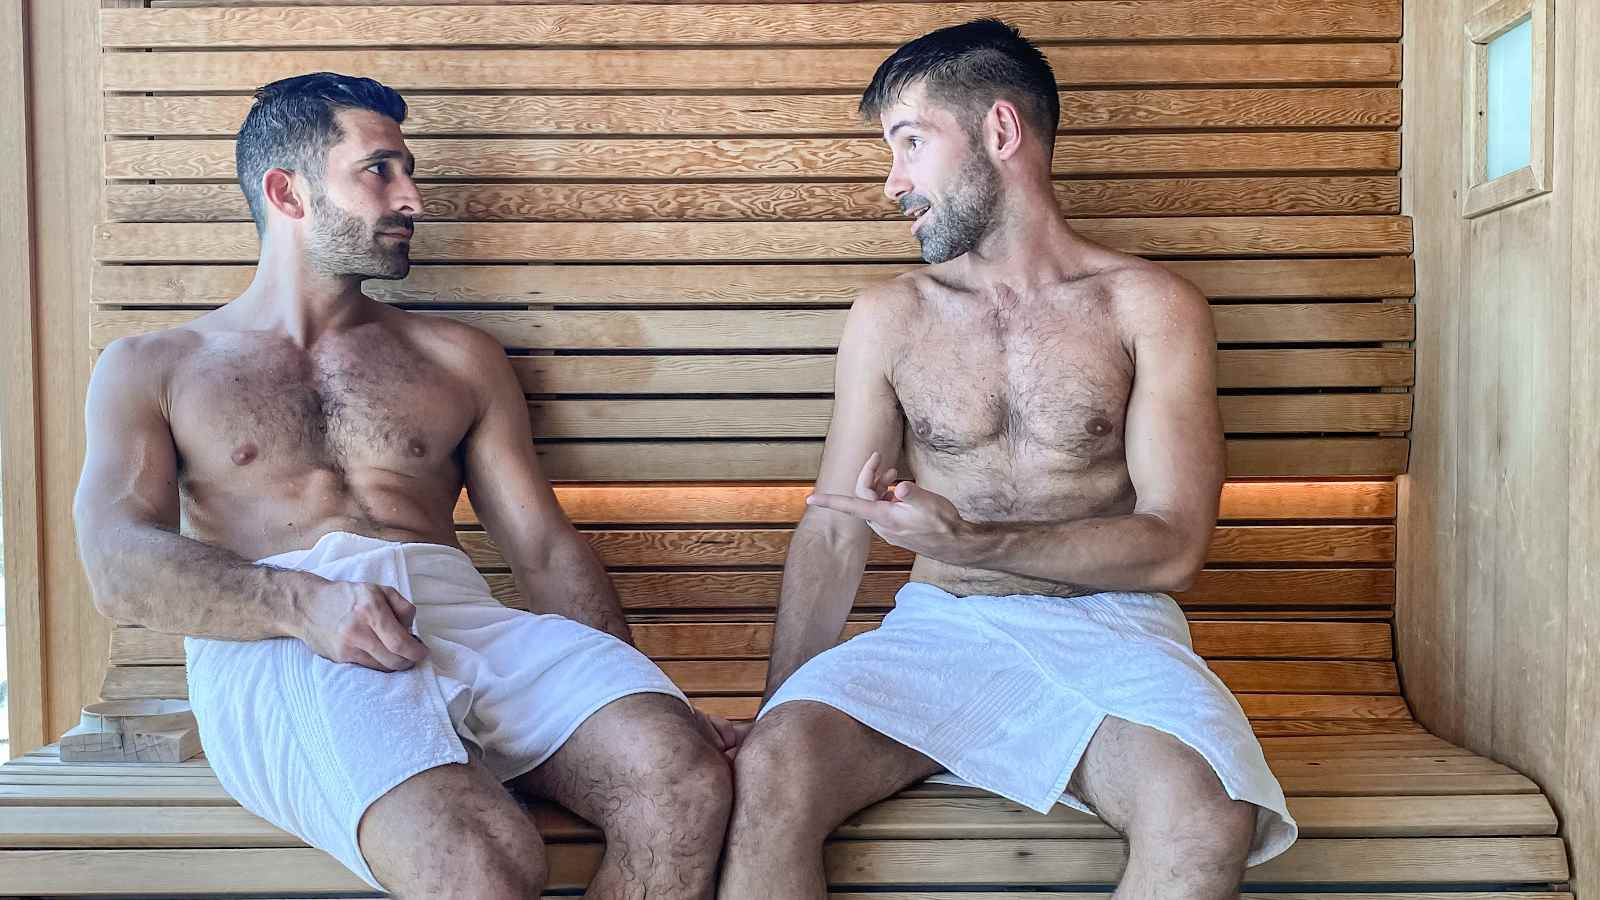 Nomadic Boys chilling in a gay sauna